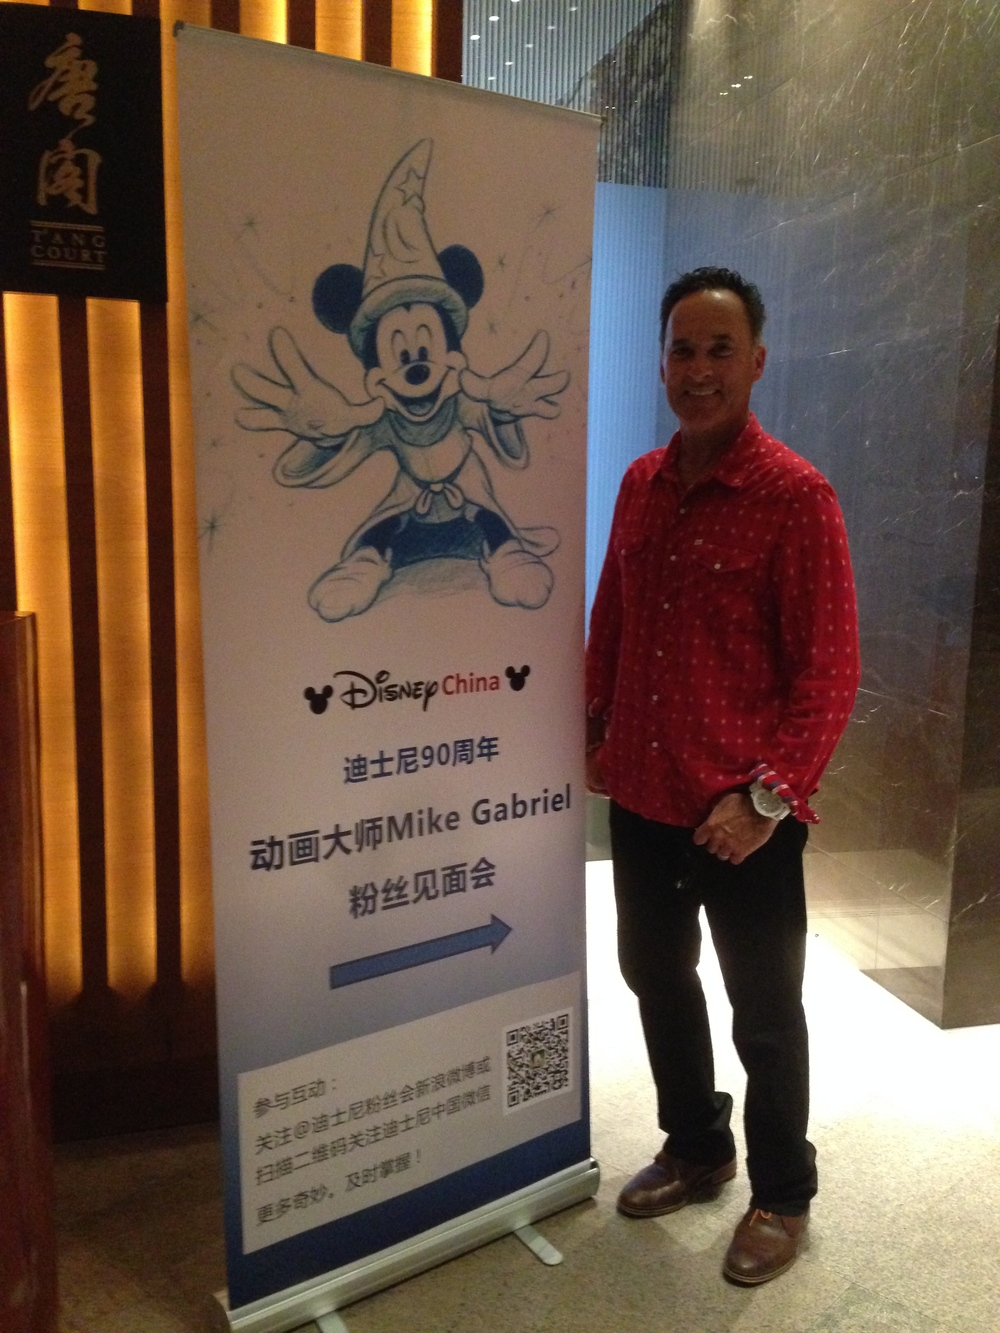 After the Bund back to work, Disney China had me give my 35 year disney career presentation to invited fans that evening at The Langham Hotel.